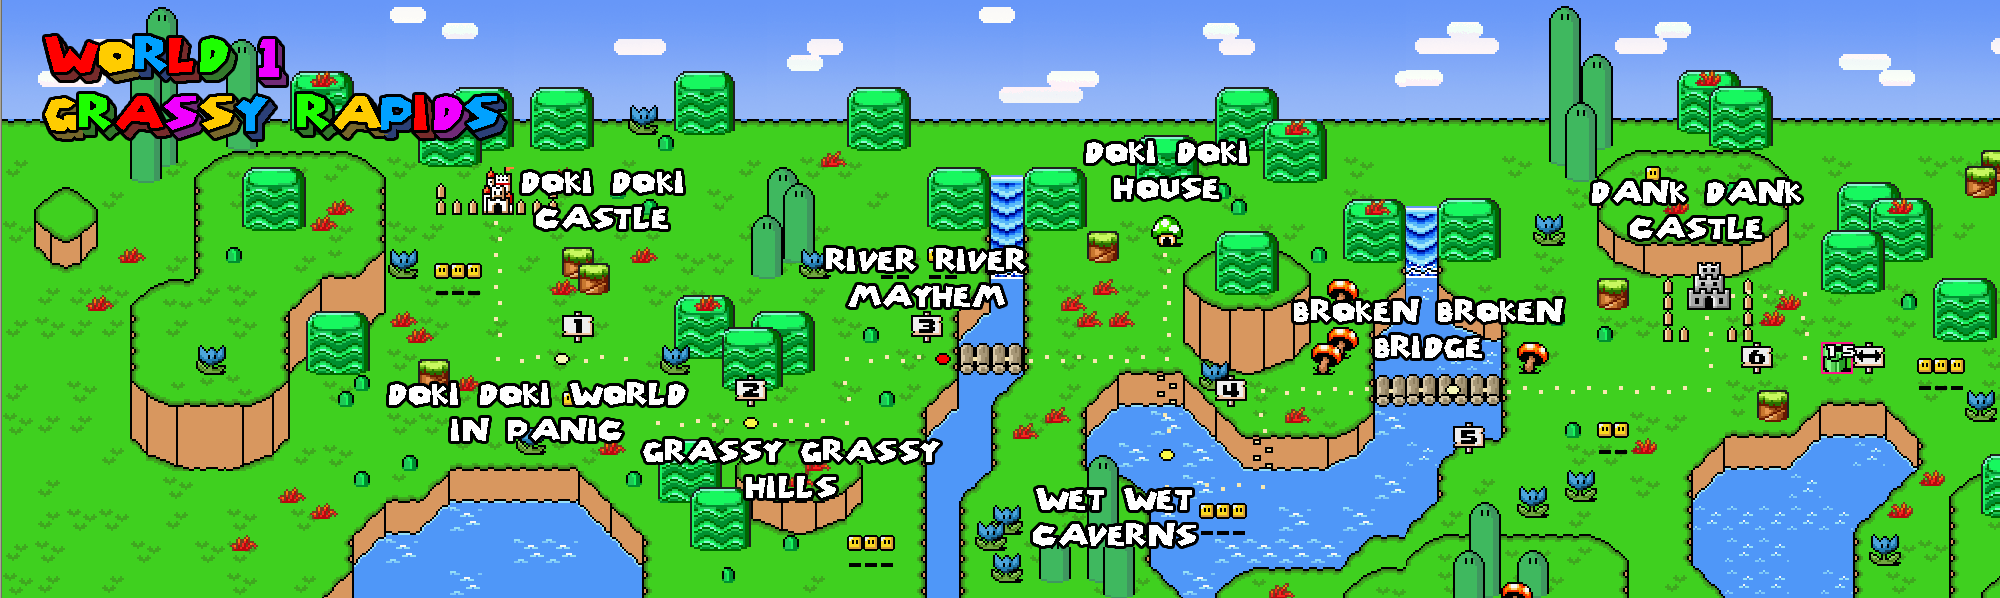 Super Mario World Map Wallpapers - Wallpaper Cave